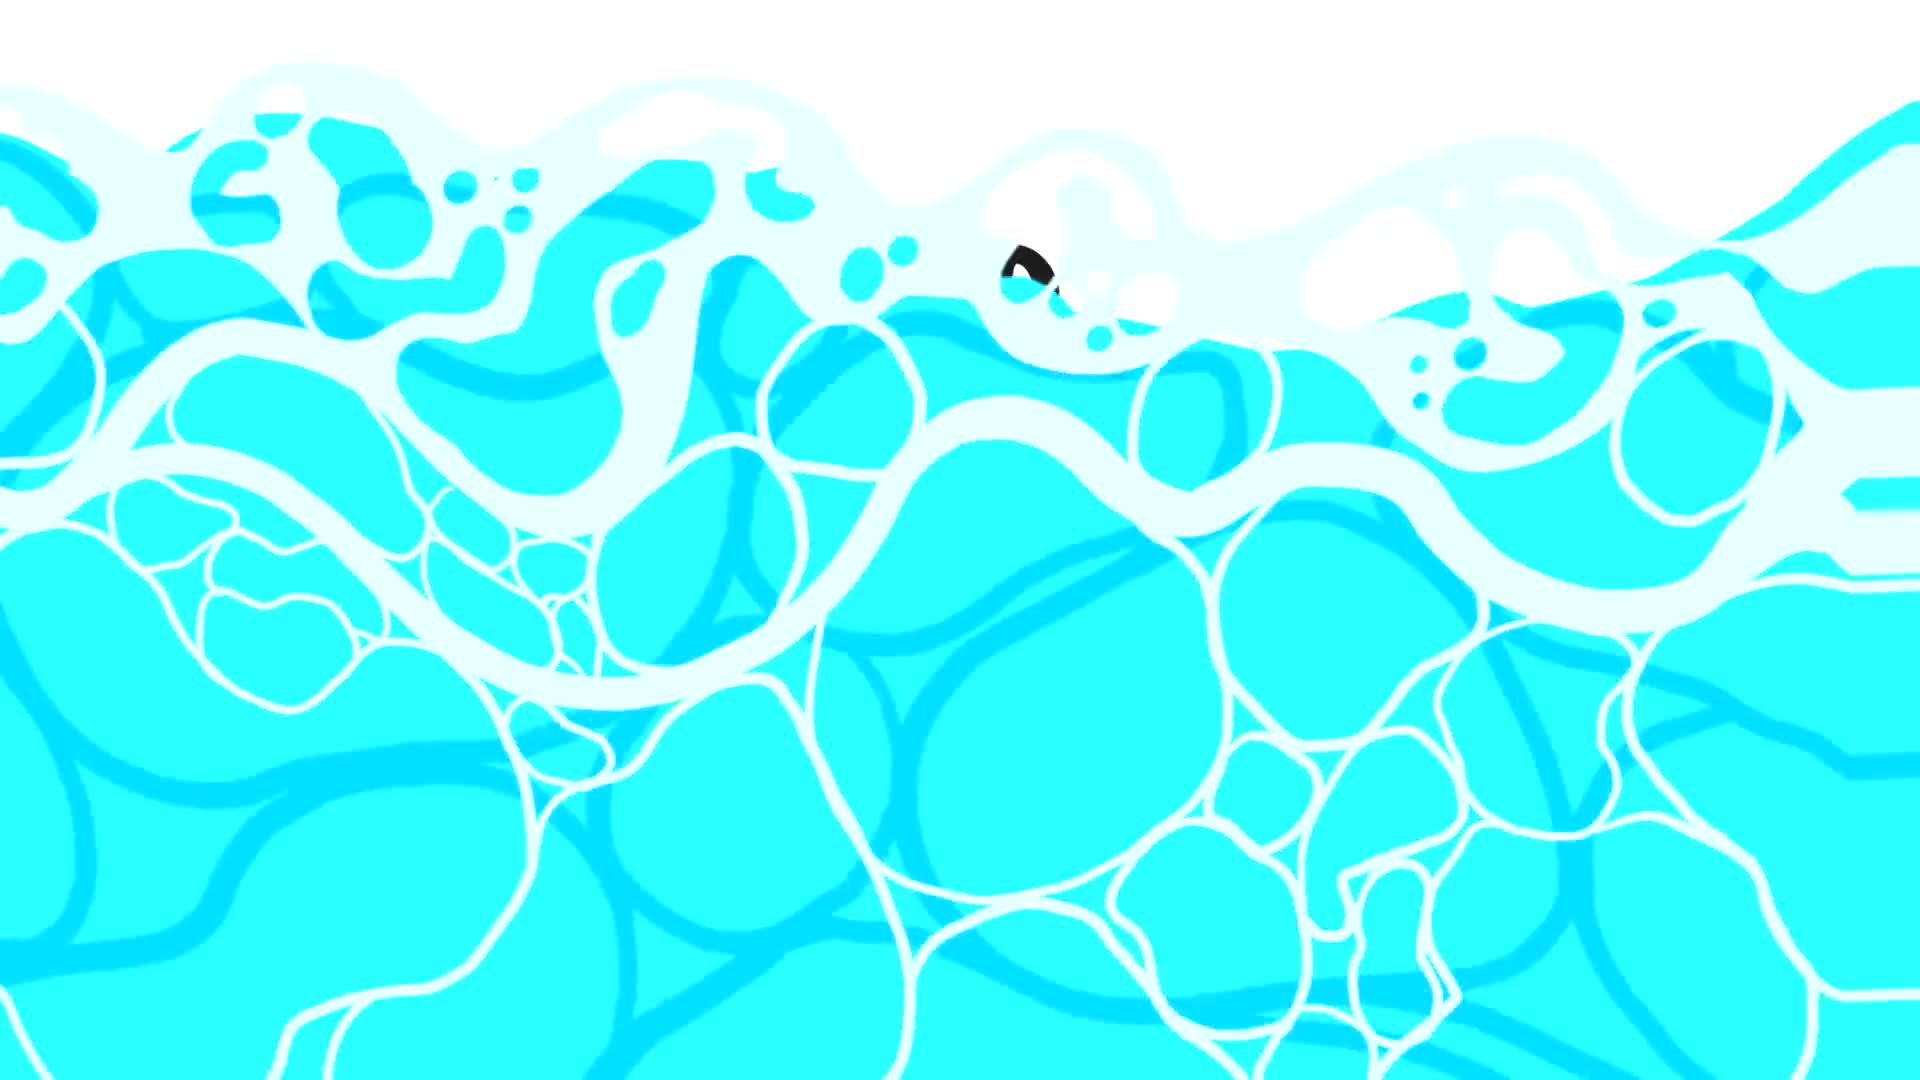 The Bizarre Deception of Hitler's Diaries | Tales From the Bottle by Qxir